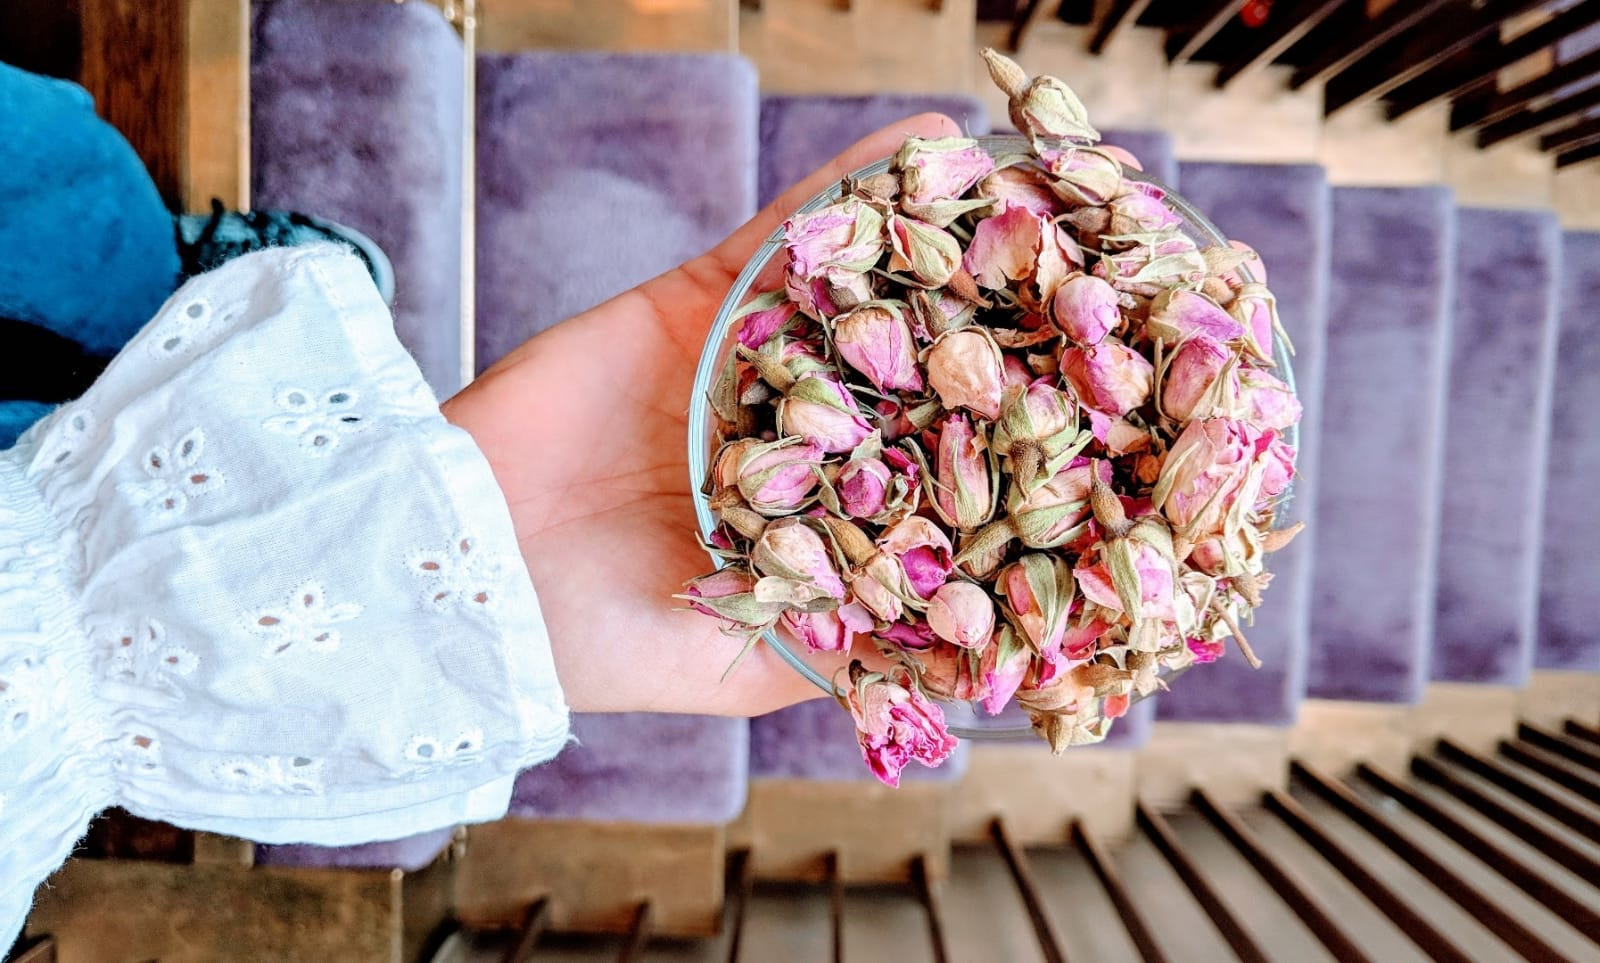 Rose bud tea at Gazelli House, house of wellbeing in South Kensington London